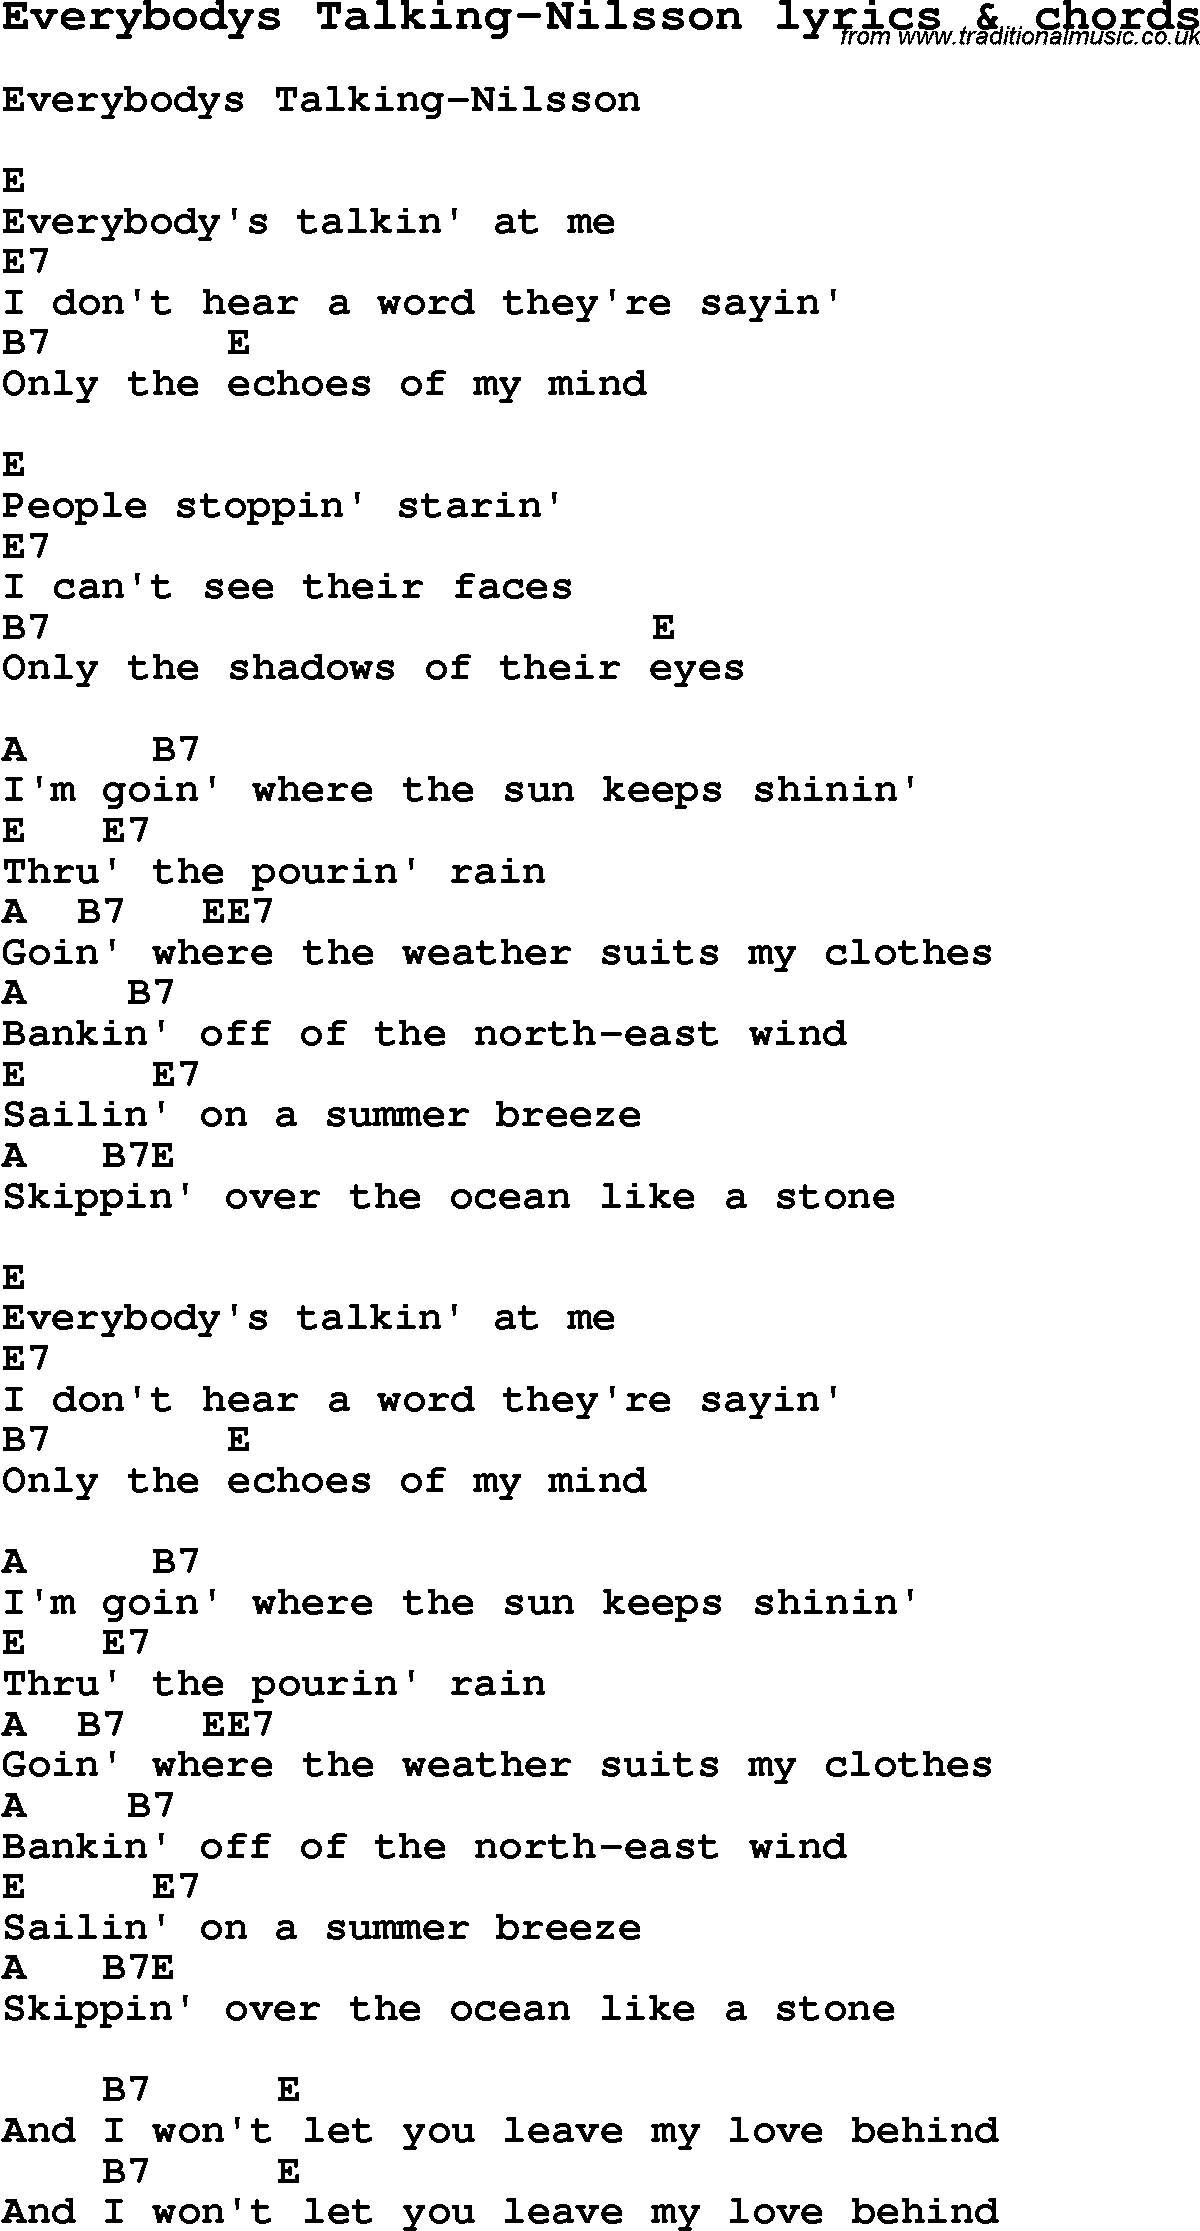 Love song lyrics foreverybodys talking nilsson with chords love song lyrics for everybodys talking nilsson with chords for ukulele guitar banjo hexwebz Images